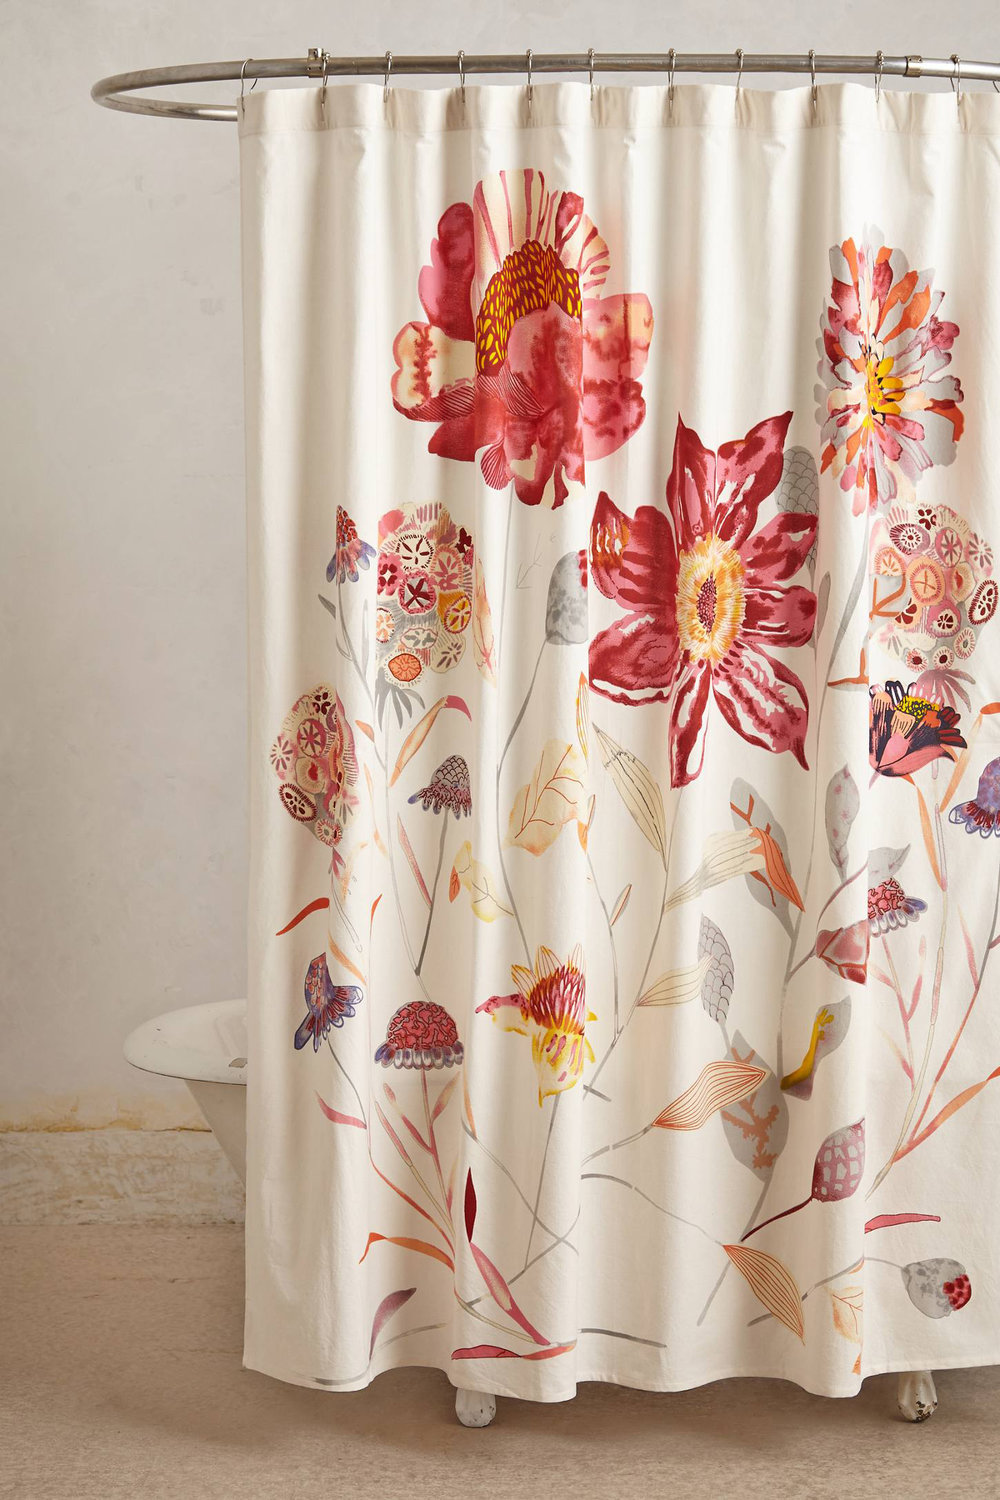 floral_shower_curtain.jpg